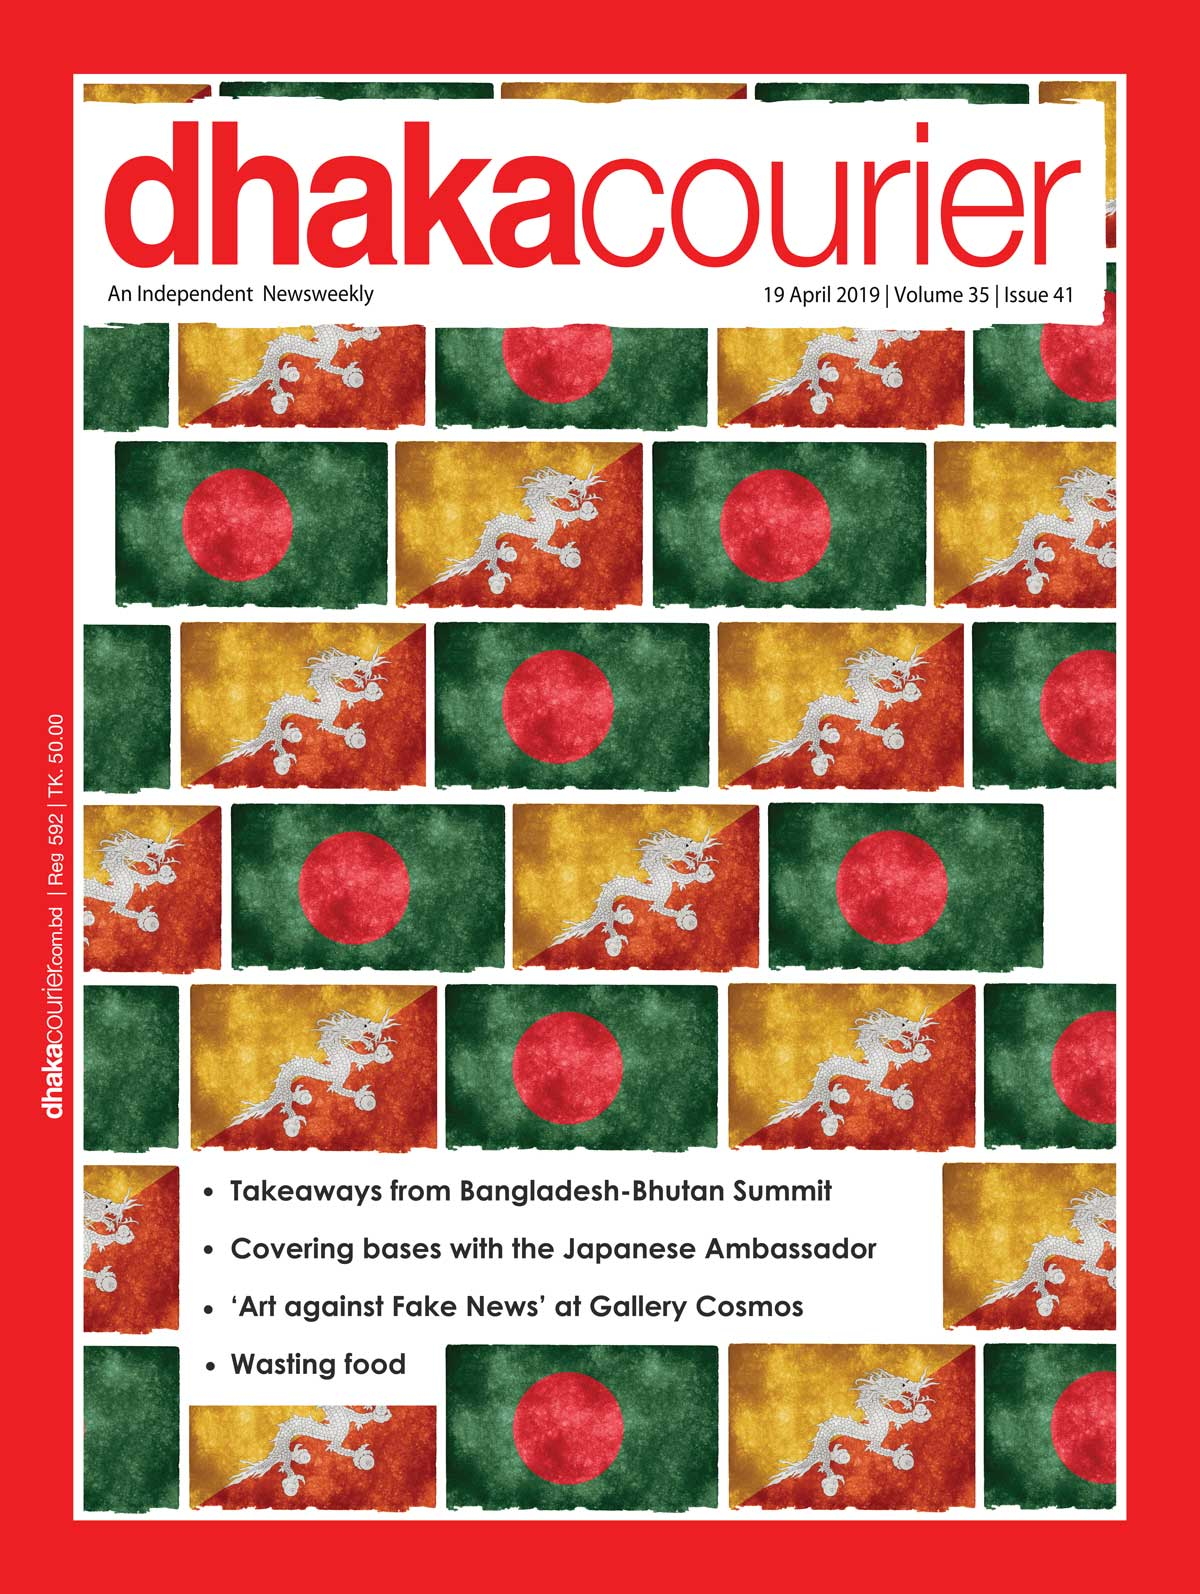 DhakaCourier Vol 35 Issue 41